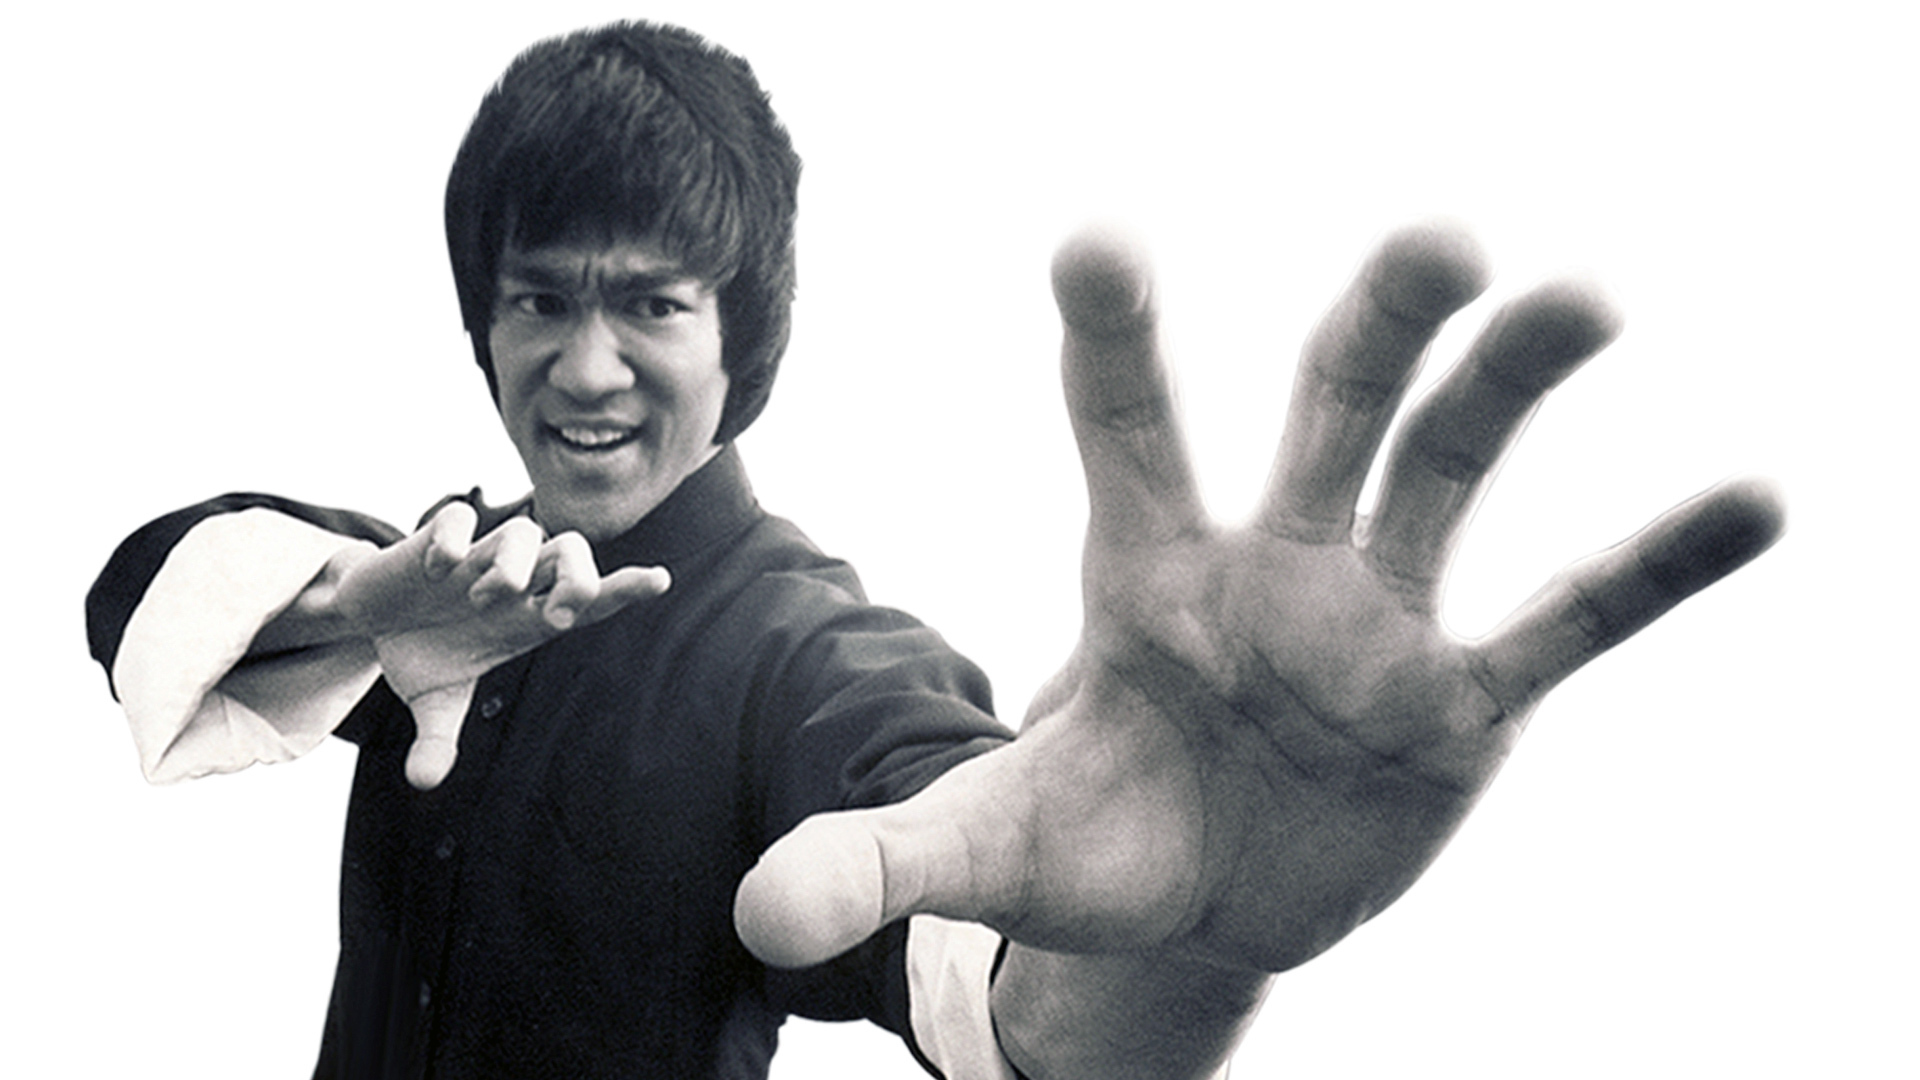 1920x1080 - Bruce Lee Wallpapers 20